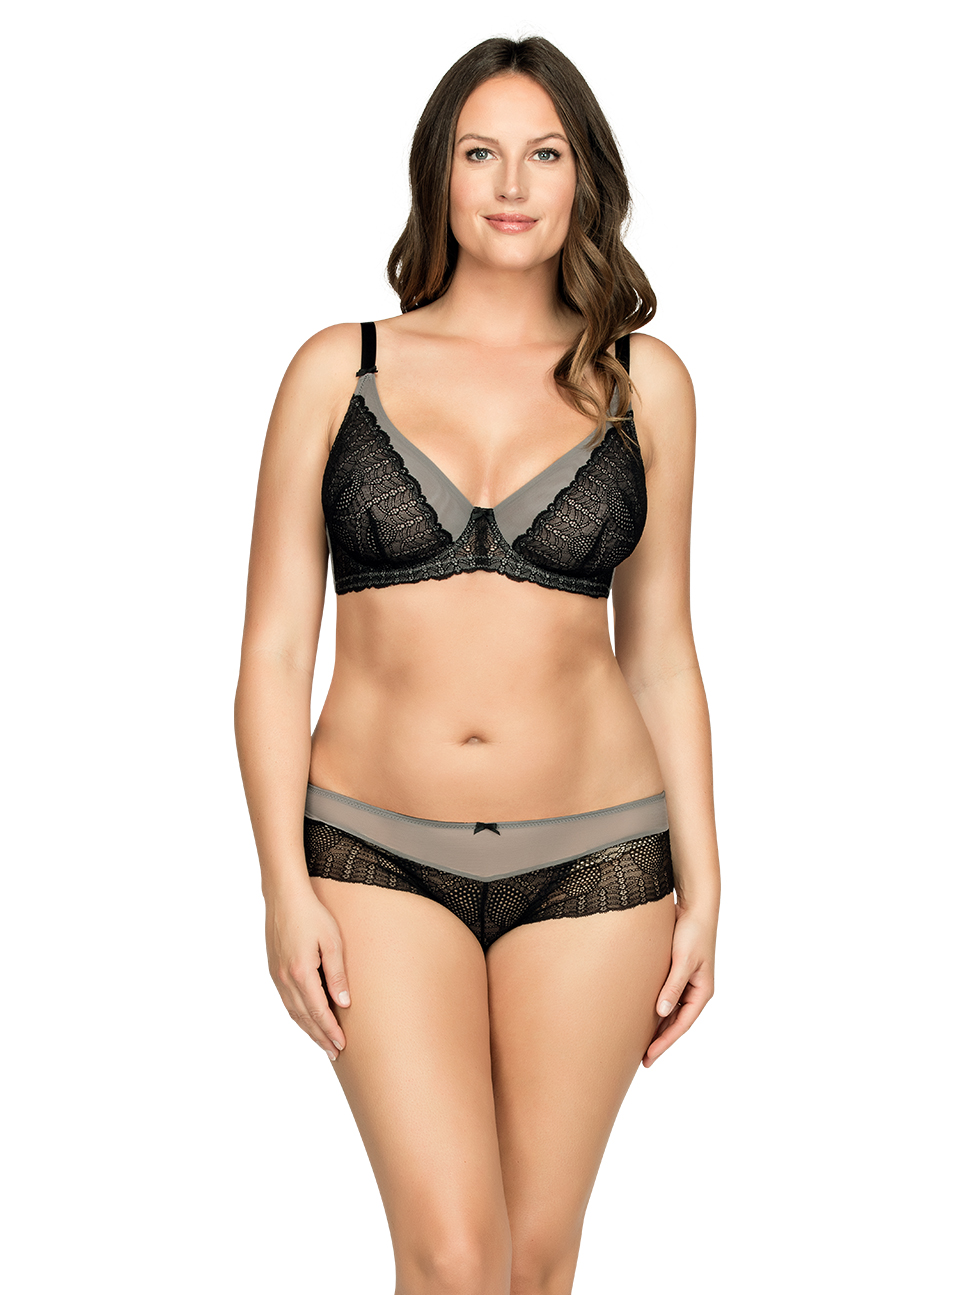 PARFAIT Vanna UnlinedWireBraP5702 HipsterP5705 BlackGray Front1 - Vanna Unlined Wire Bra Black w Gray P5702